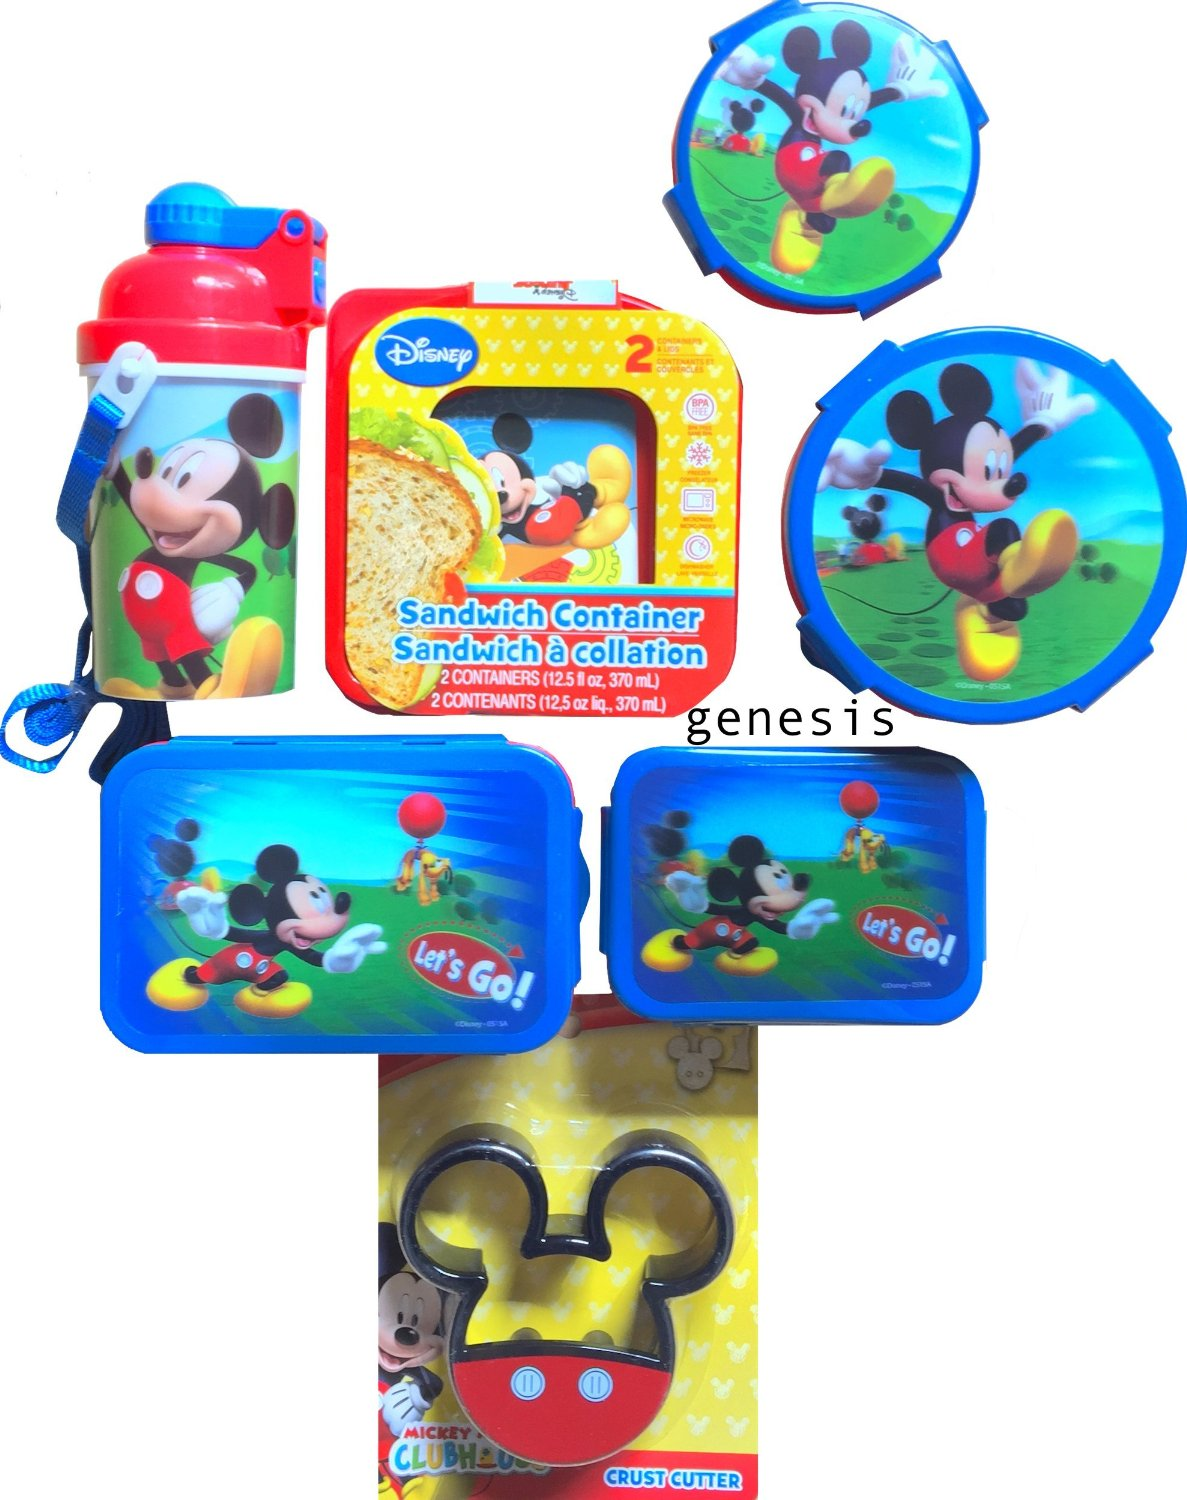 Mickey Mouse 7 Pc Children's Lunch Gift Set With Snack & Food Storages, Bottle, Crust Cutter & Utensils